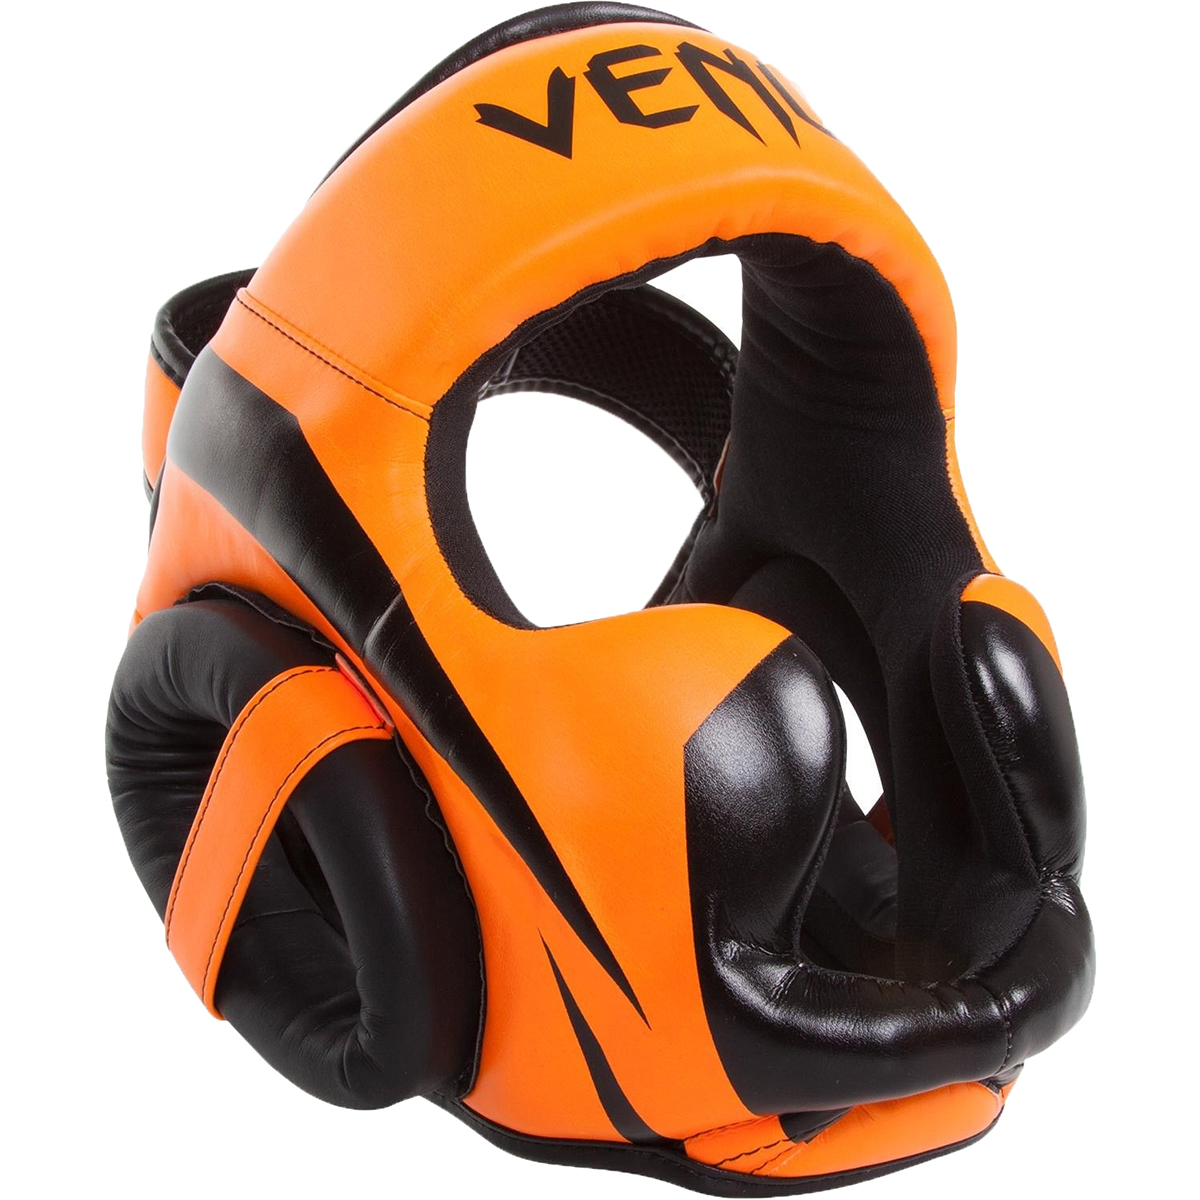 Venum-Elite-Boxing-Headgear thumbnail 32